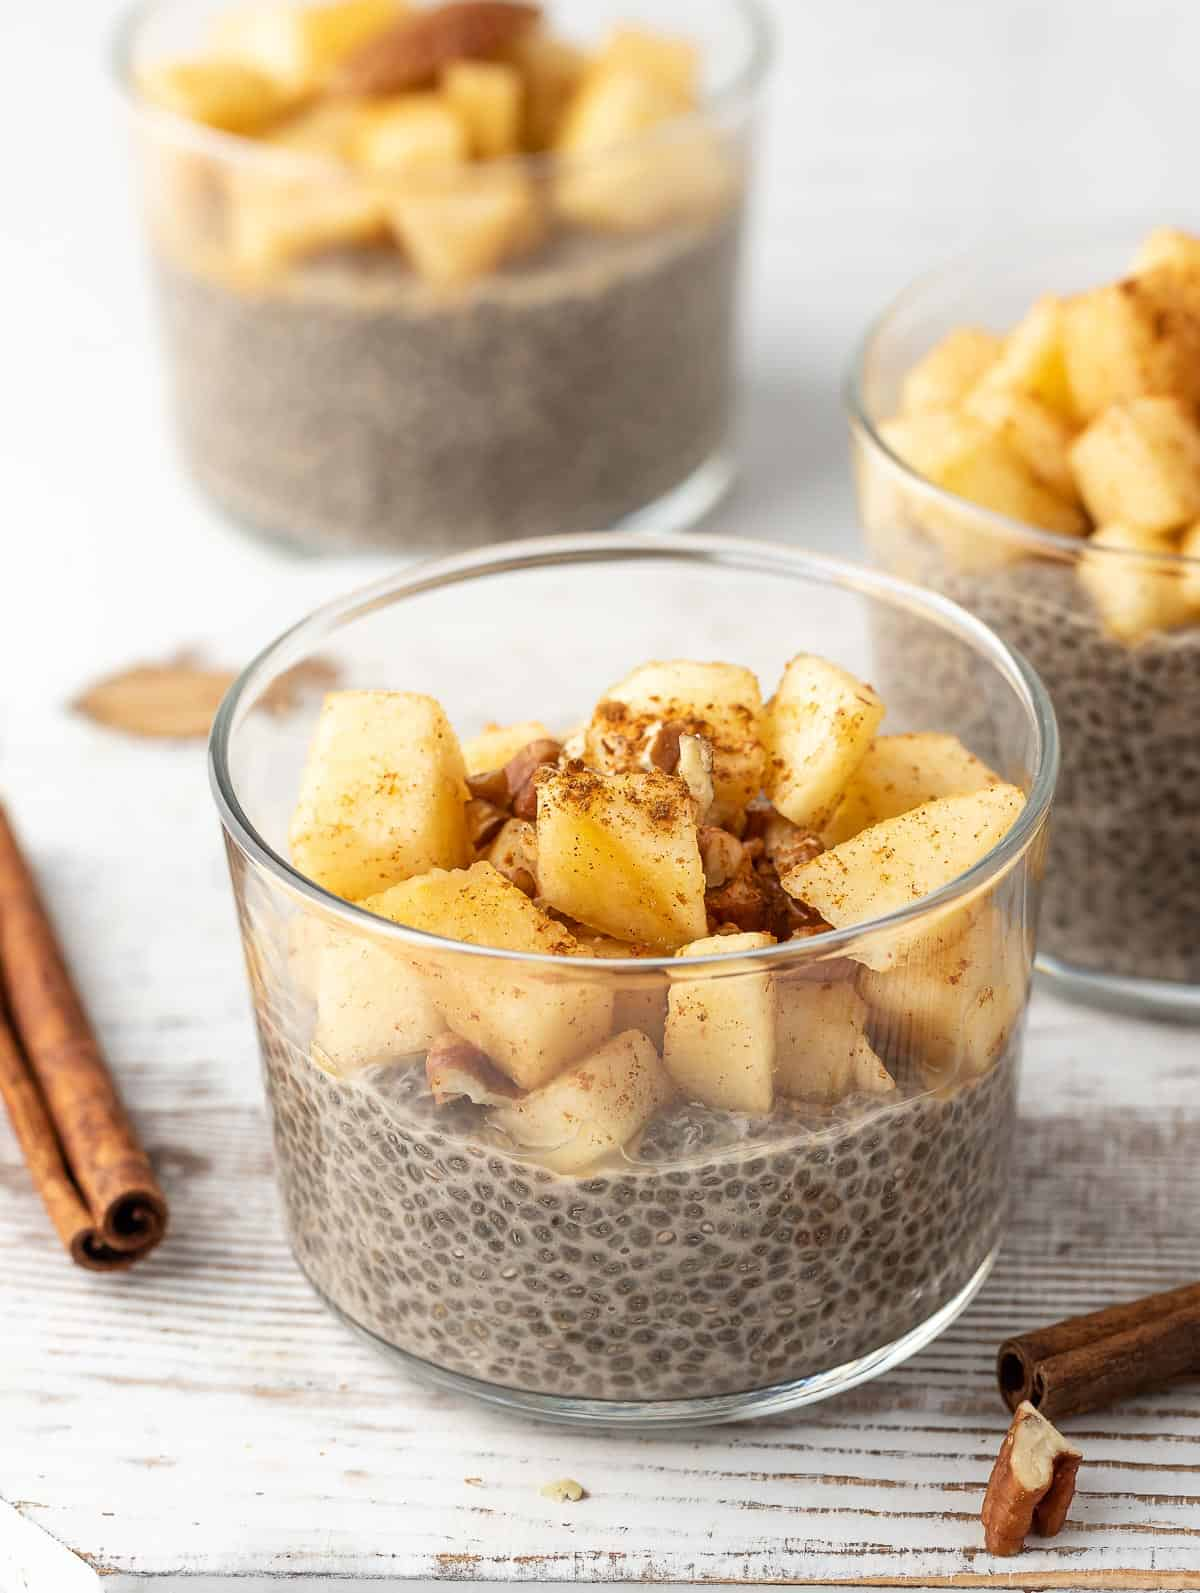 Overnight Chia Pudding topped with apples and cinnamon sticks on the side of the bowl.